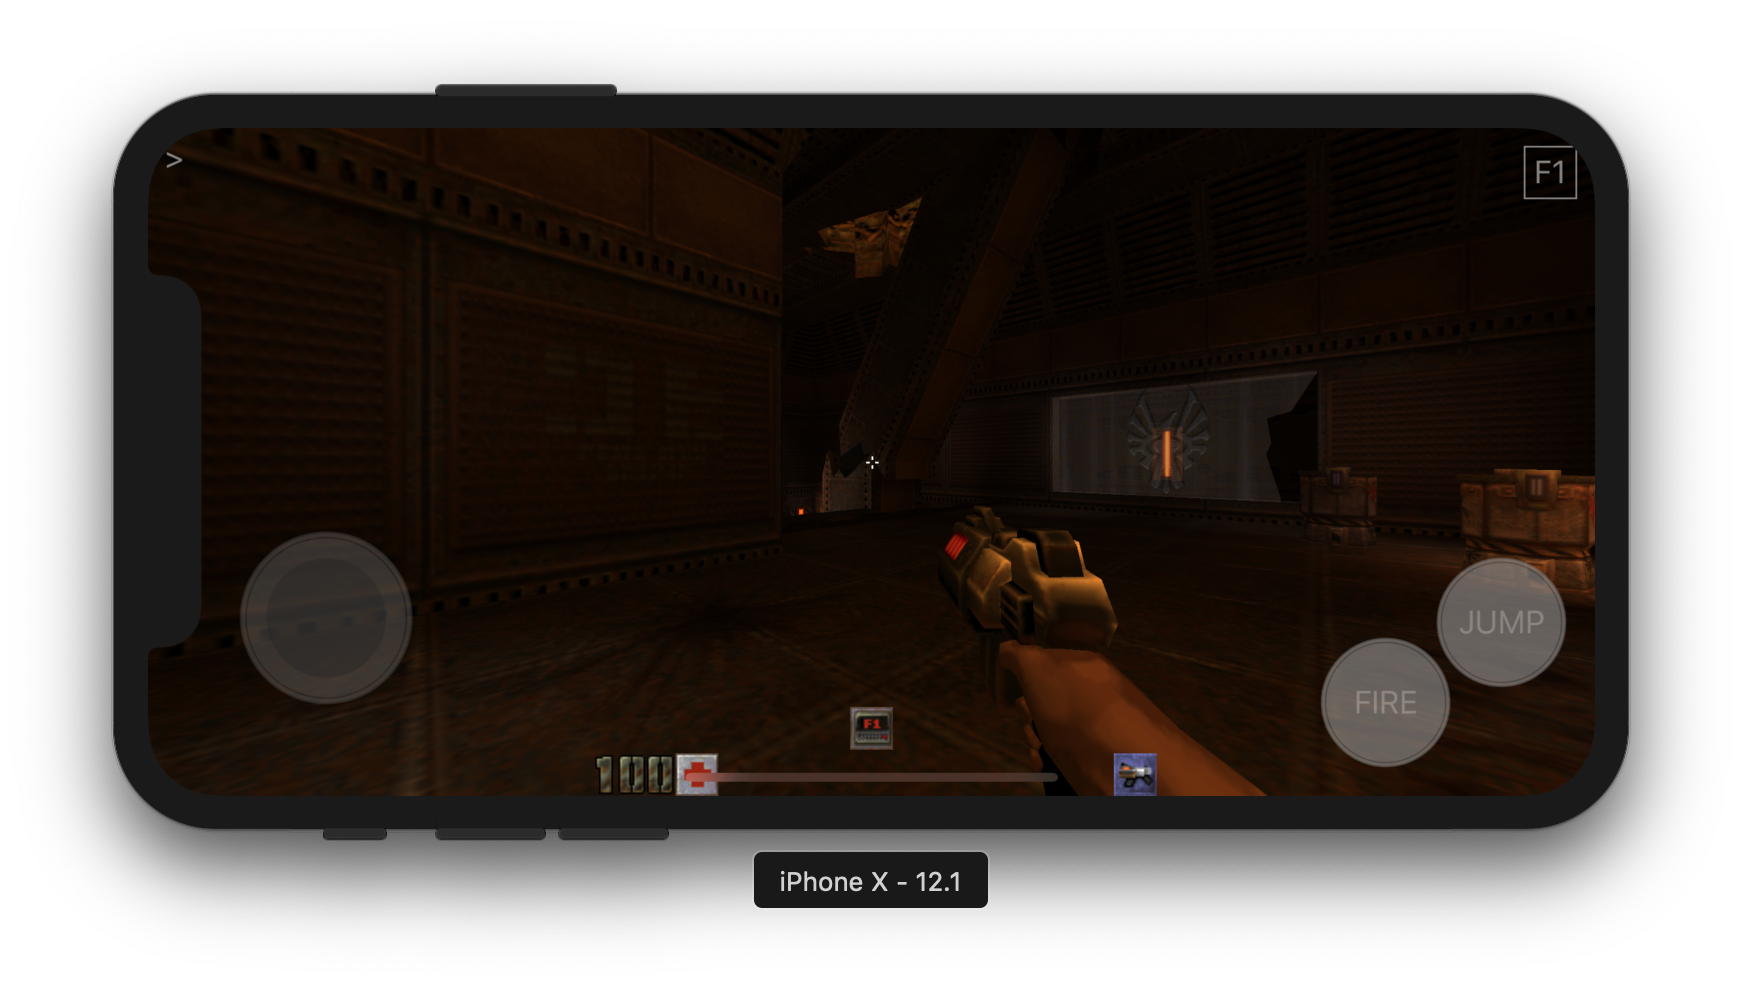 Schnapple's iOS port of Quake 2 features onscreen buttons and virtual analog.